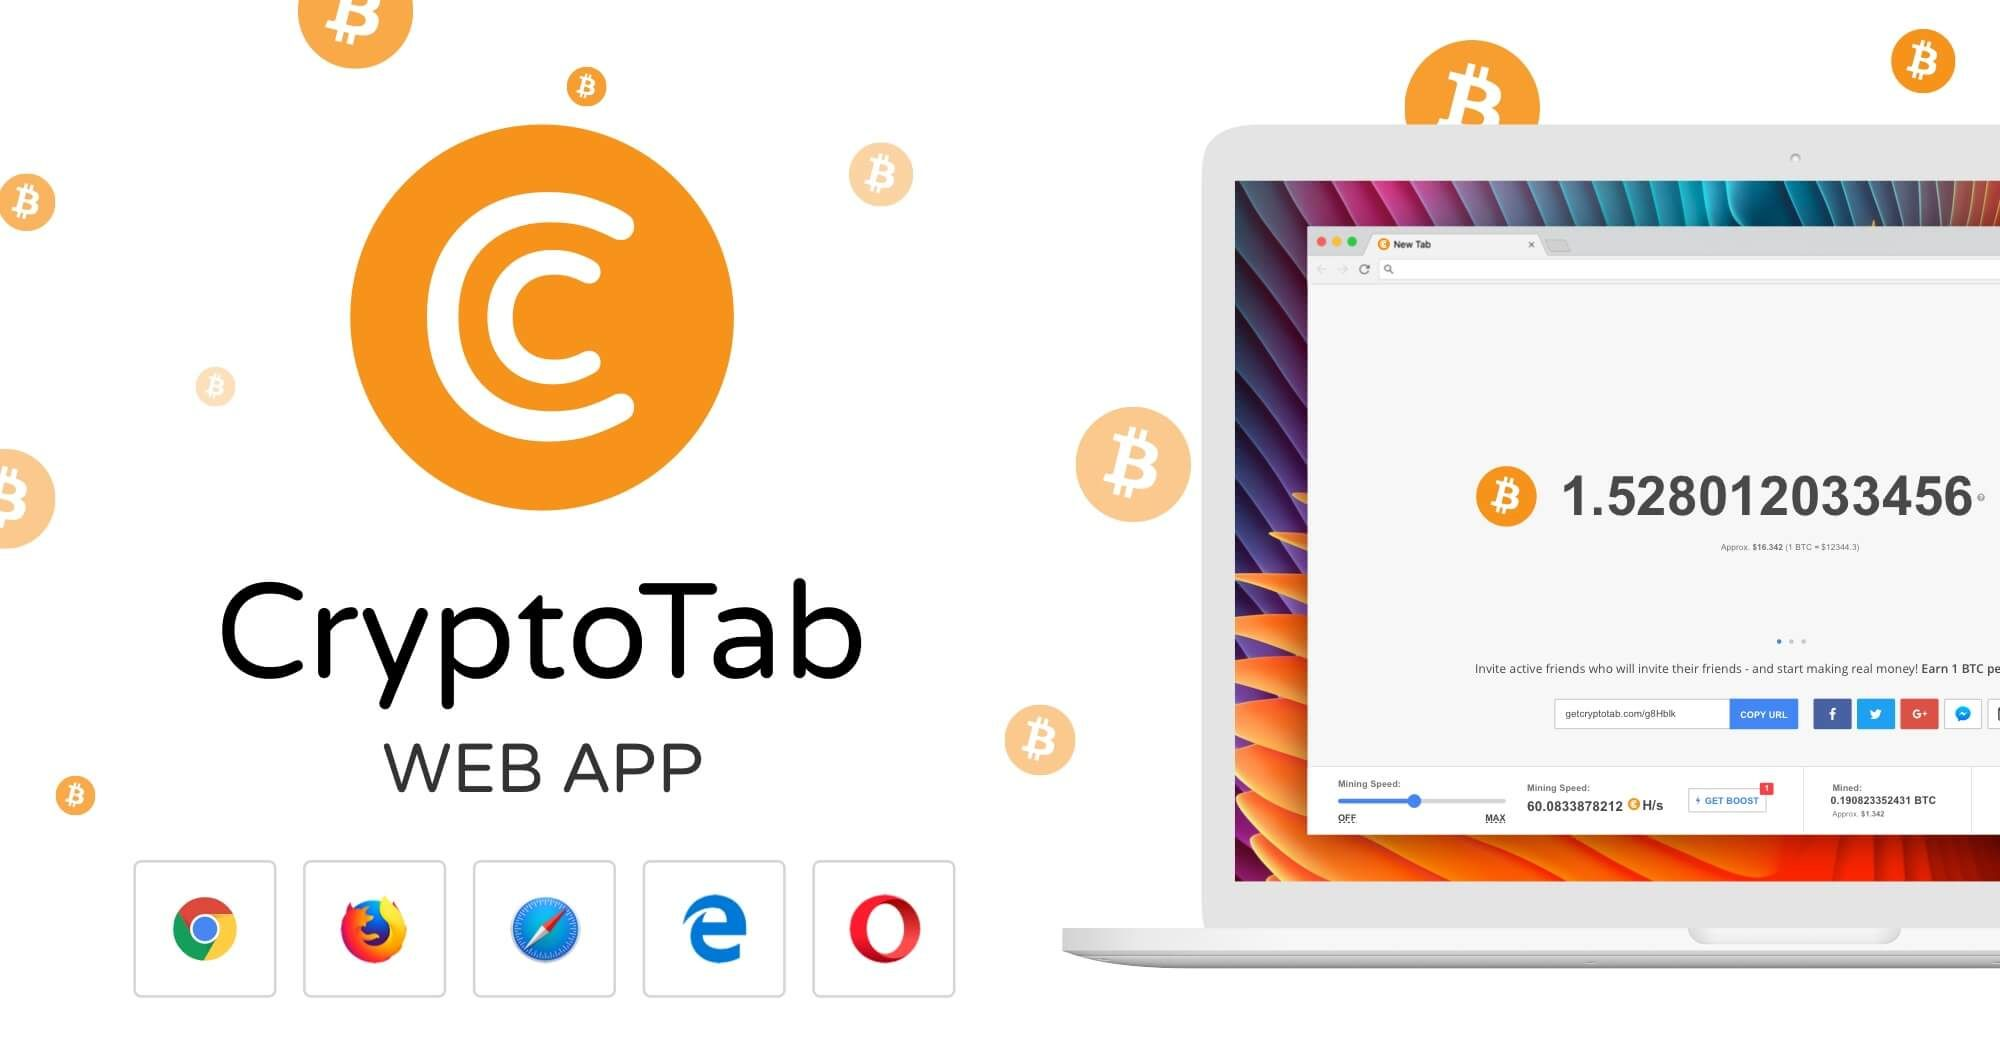 Invite new users to try CryptoTab browser with your